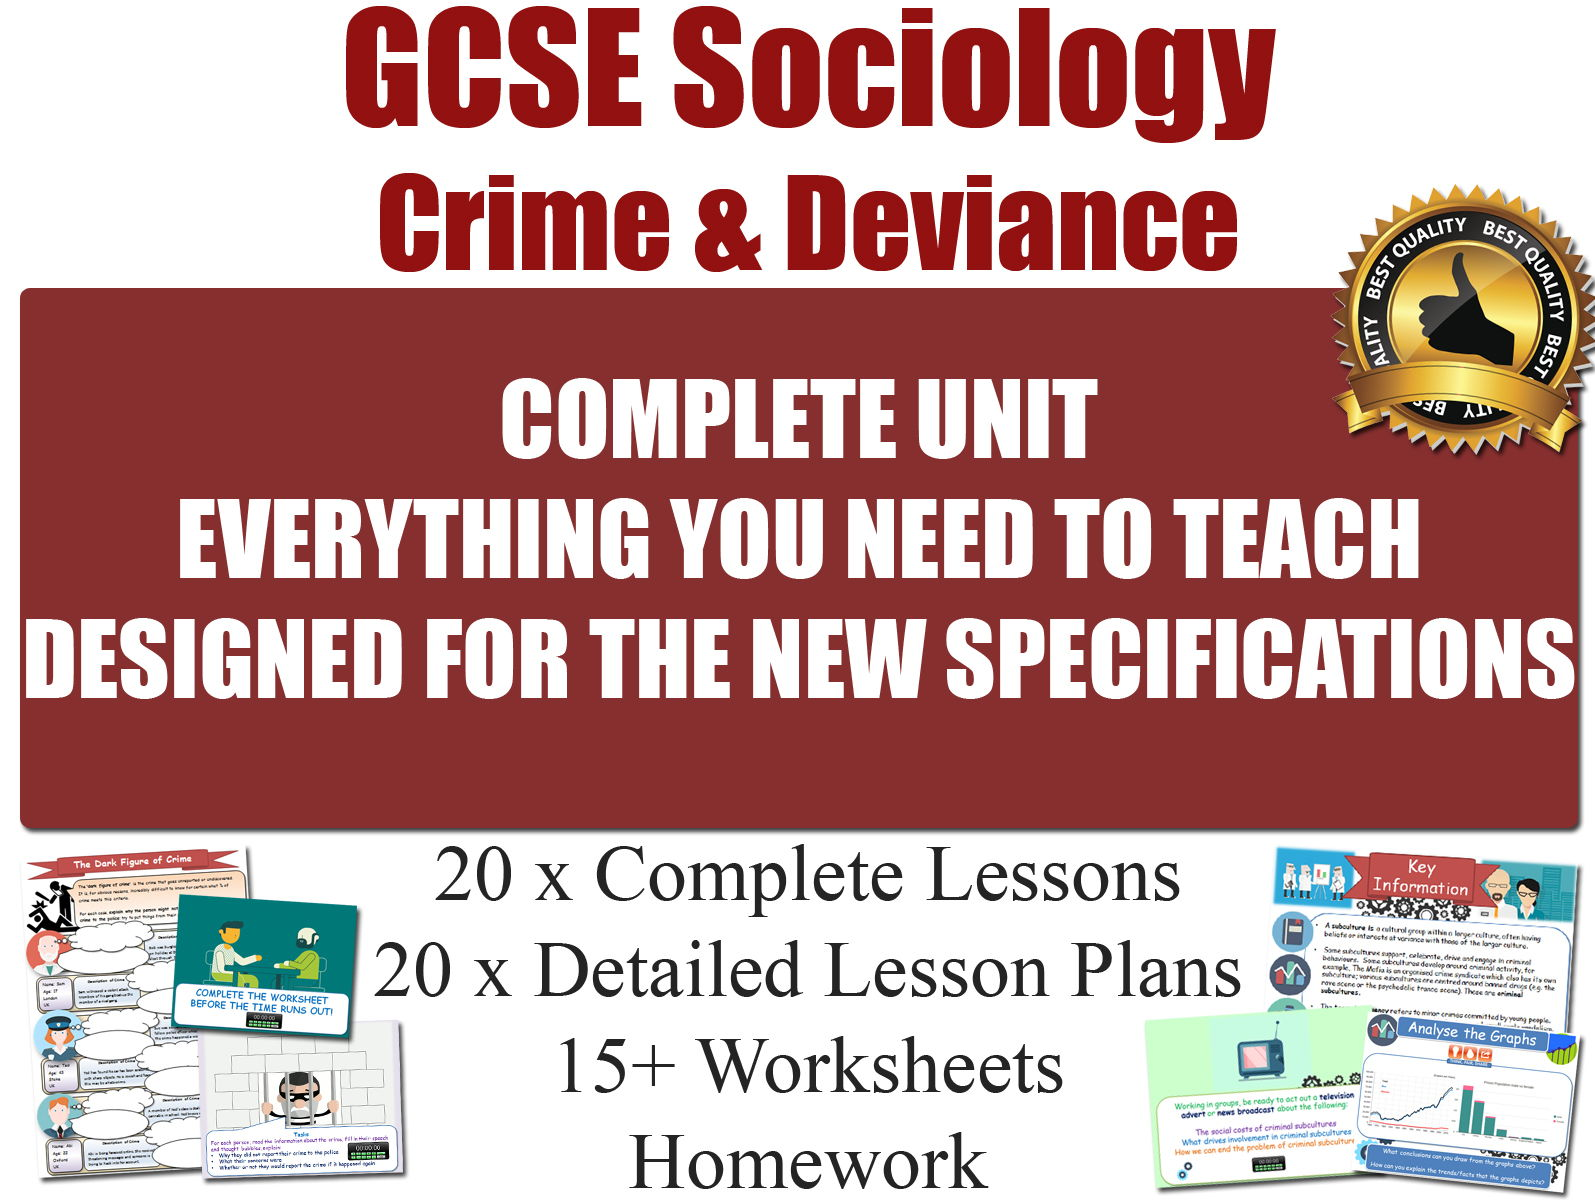 Crime & Deviance (20 x Lessons, Complete Unit) [ GCSE Sociology ] (Full Resources for the Entire Section of the Course) [HIGH QUALITY]